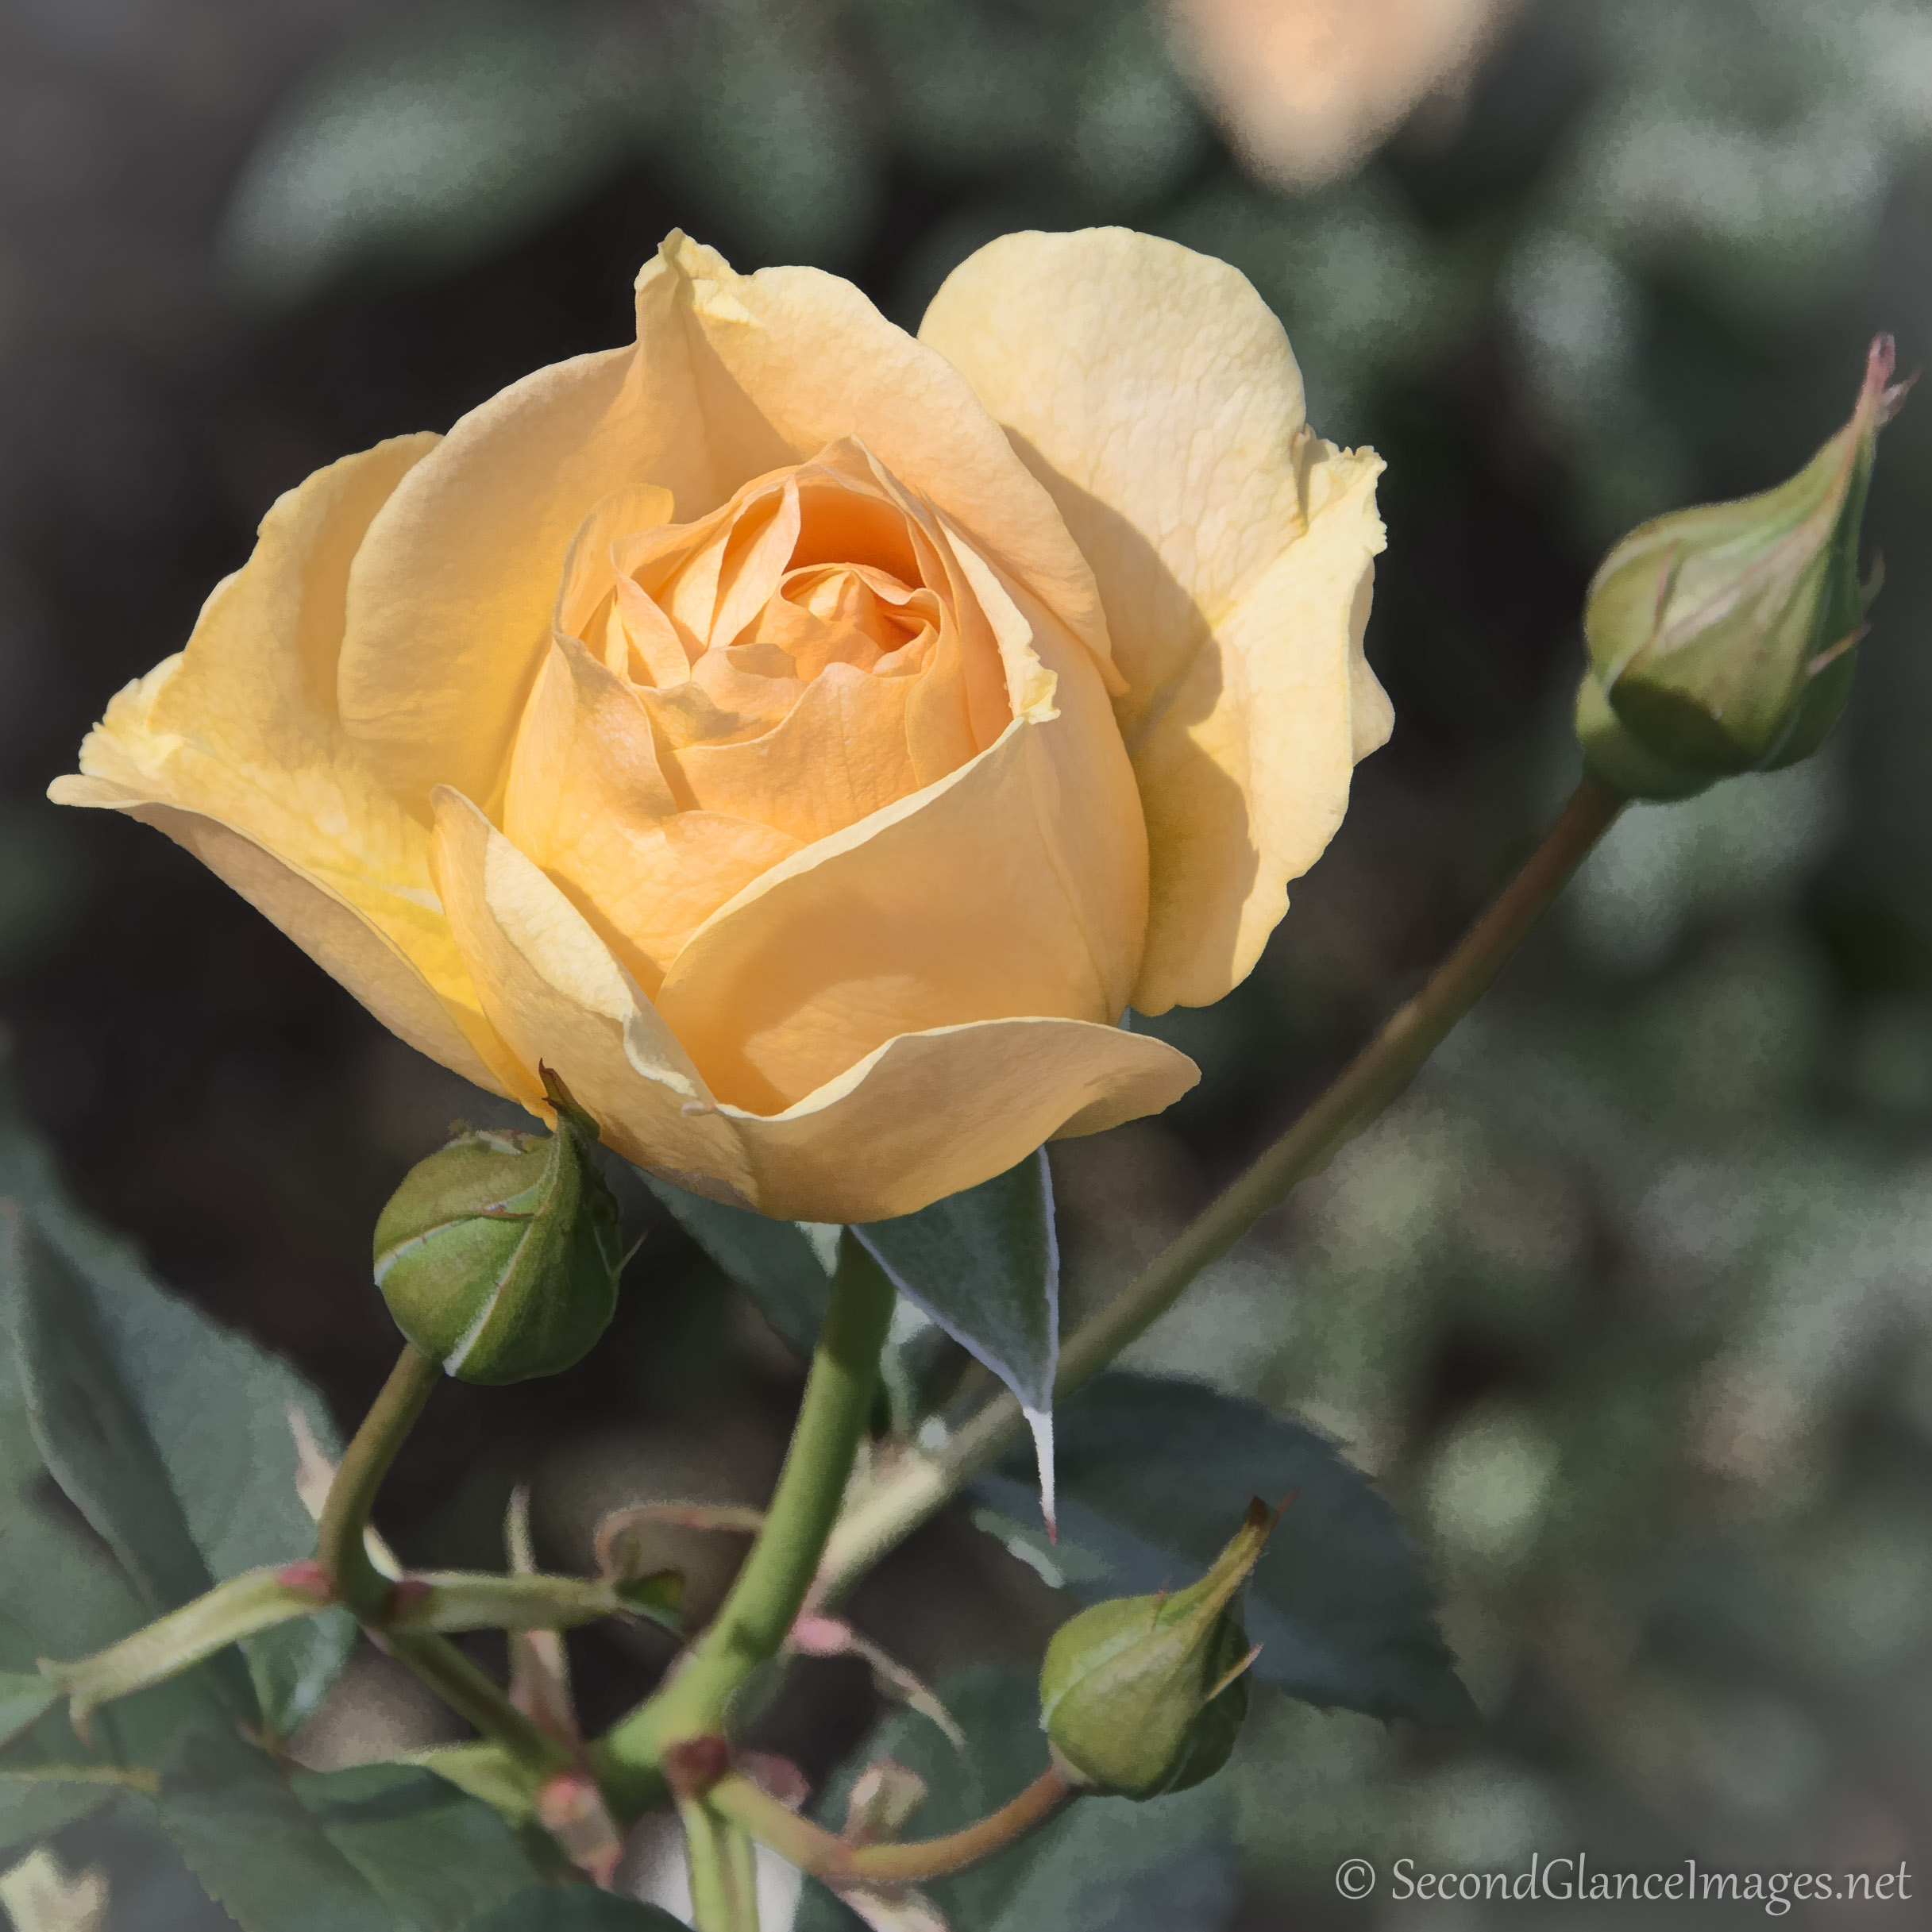 I have always loved yellow roses ...